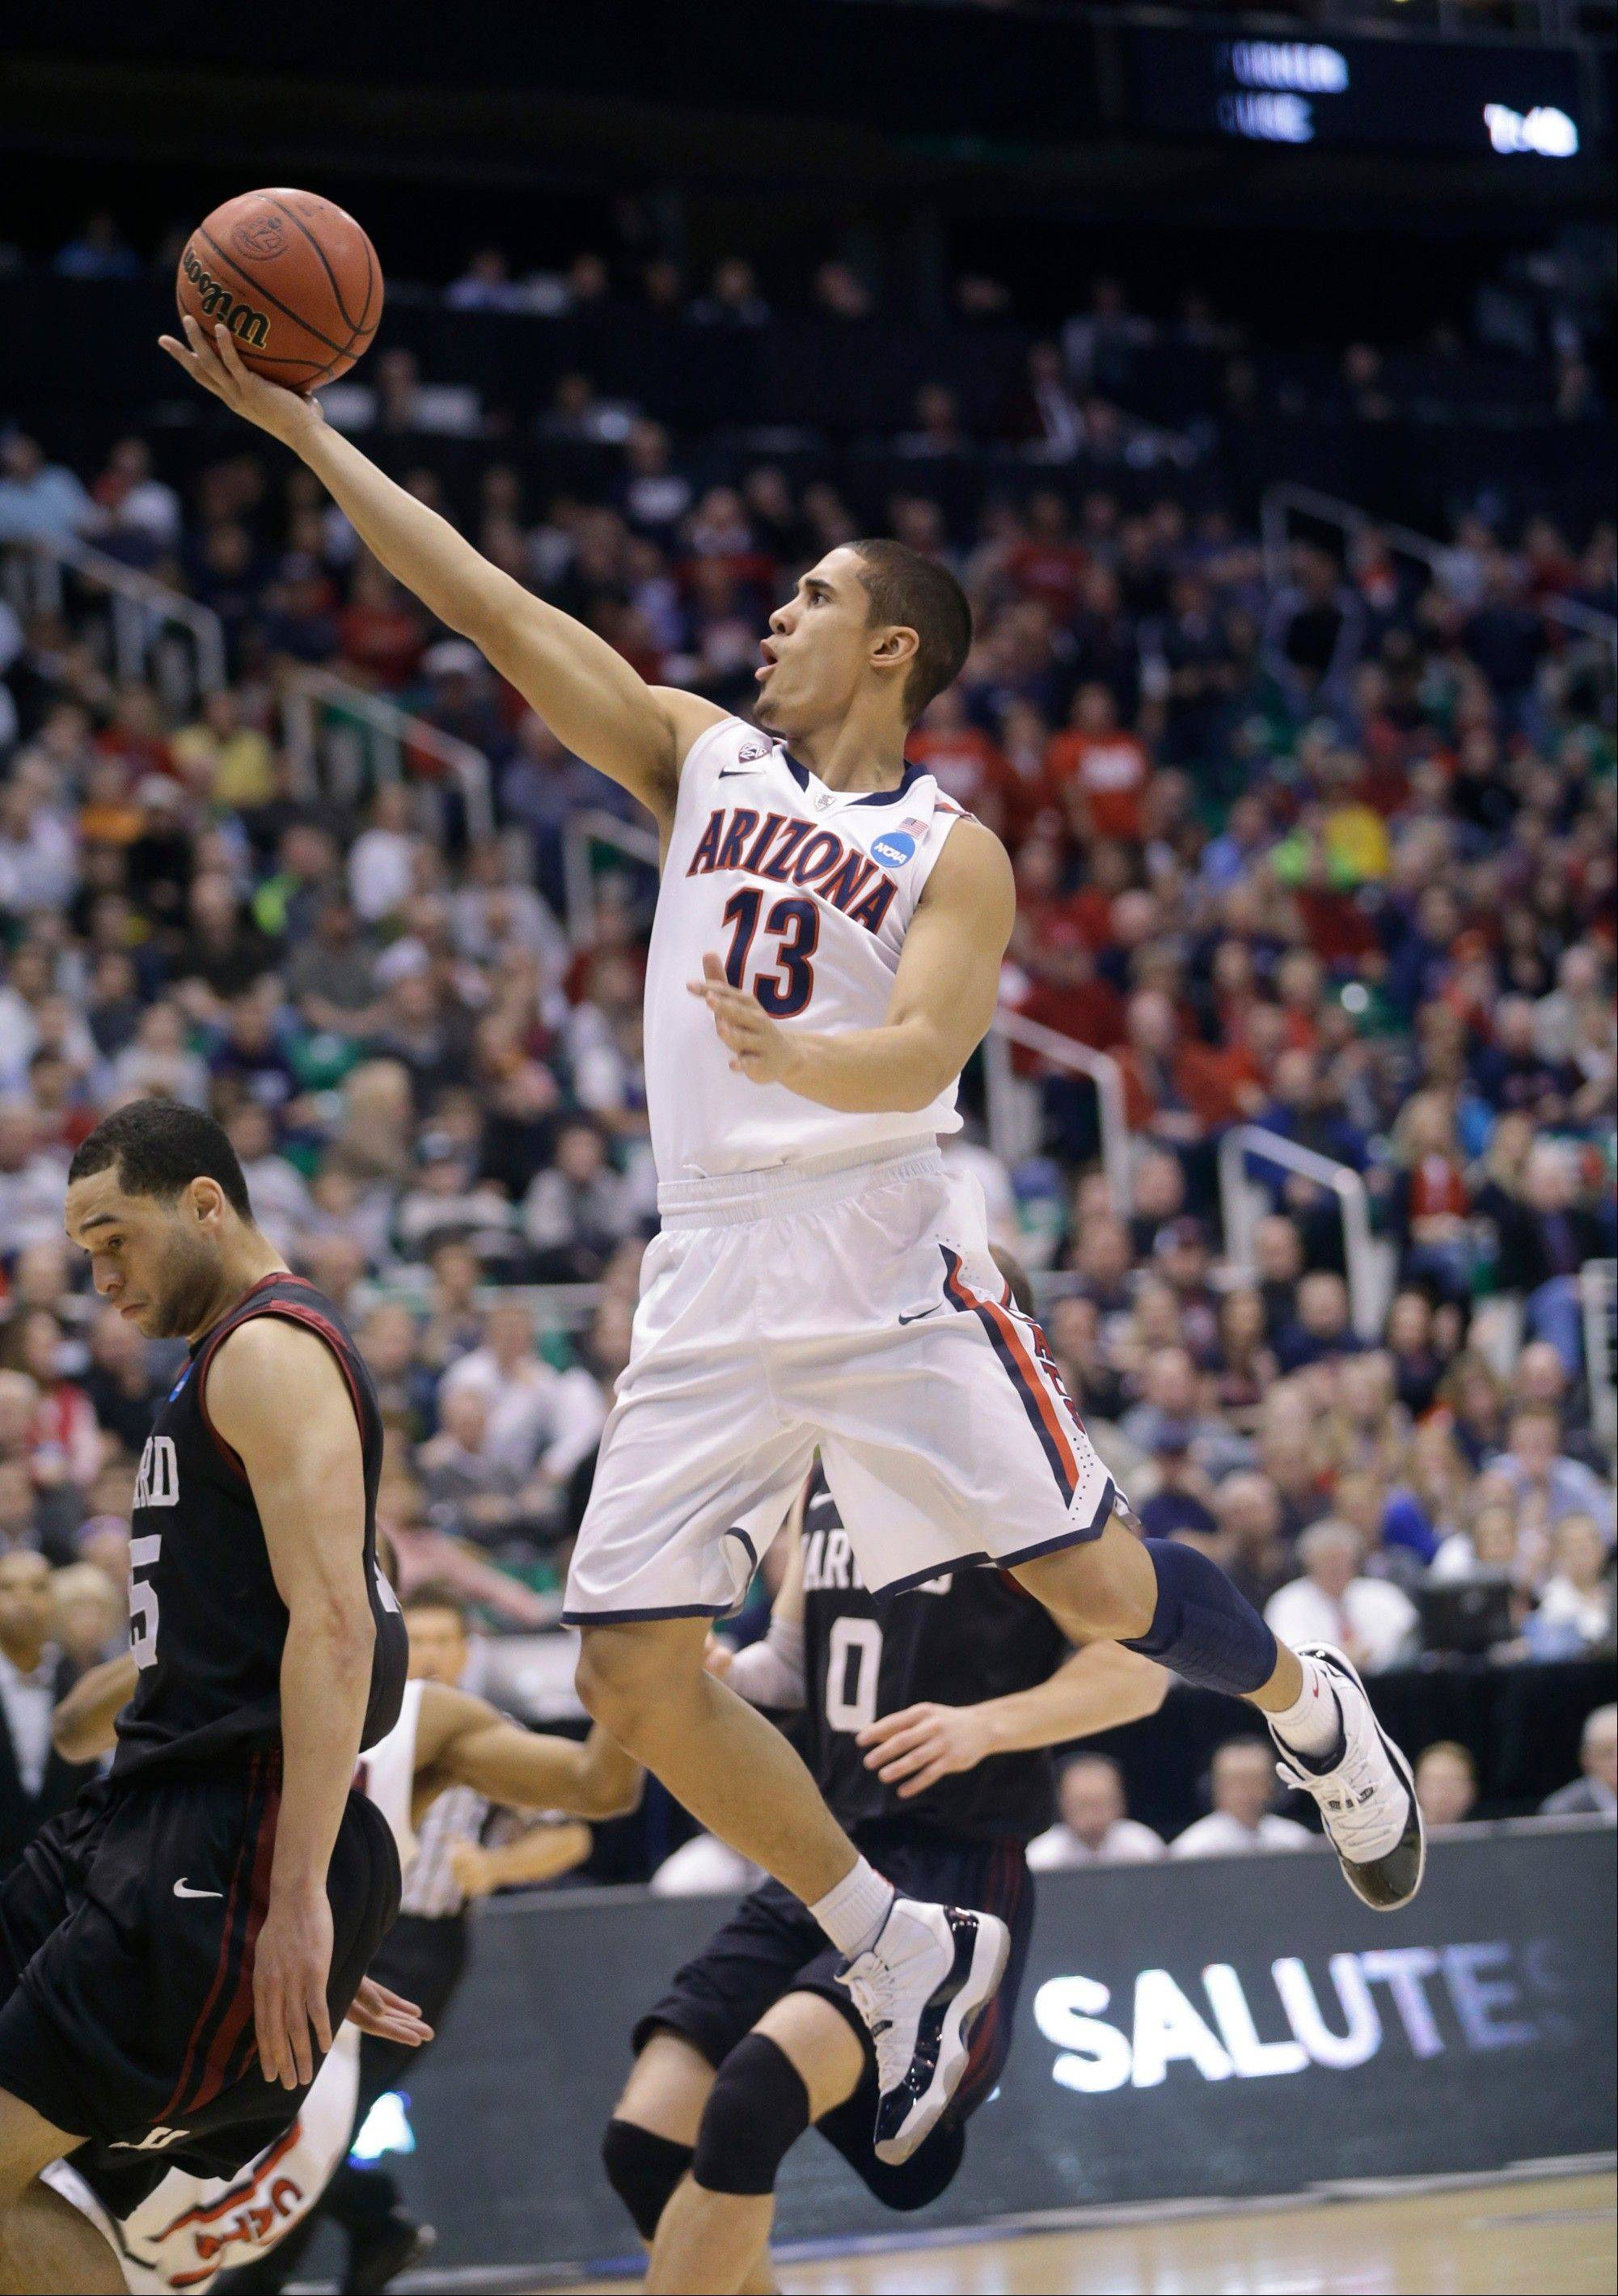 Arizona's Nick Johnson (13) lays the ball up next to Harvard's Christian Webster in the first half during a third-round game in the NCAA men's college basketball tournament in Salt Lake City, Saturday, March 23, 2013.